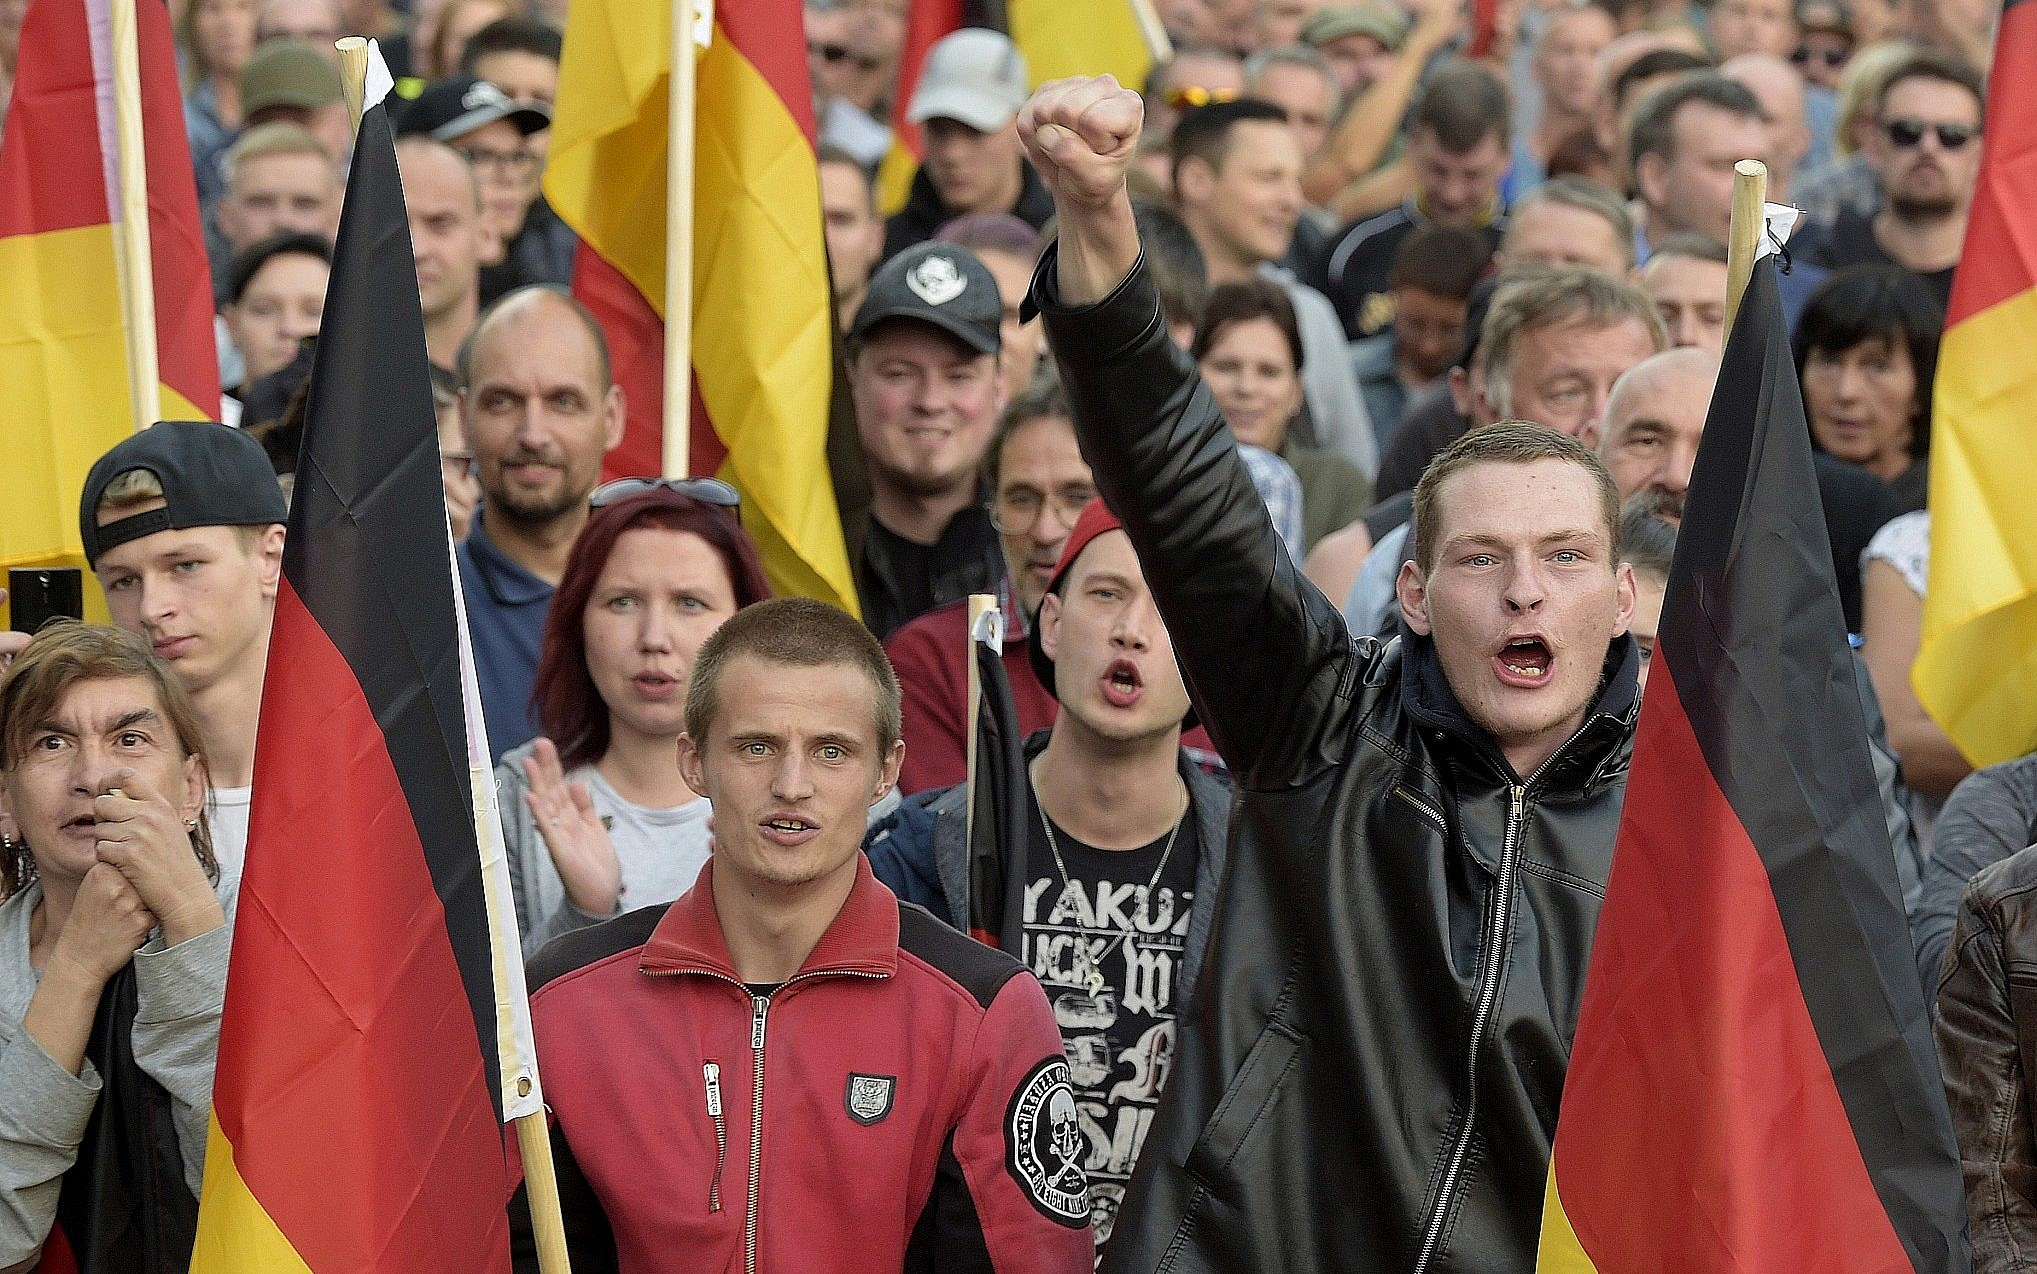 Syrian convicted over Chemnitz stabbing